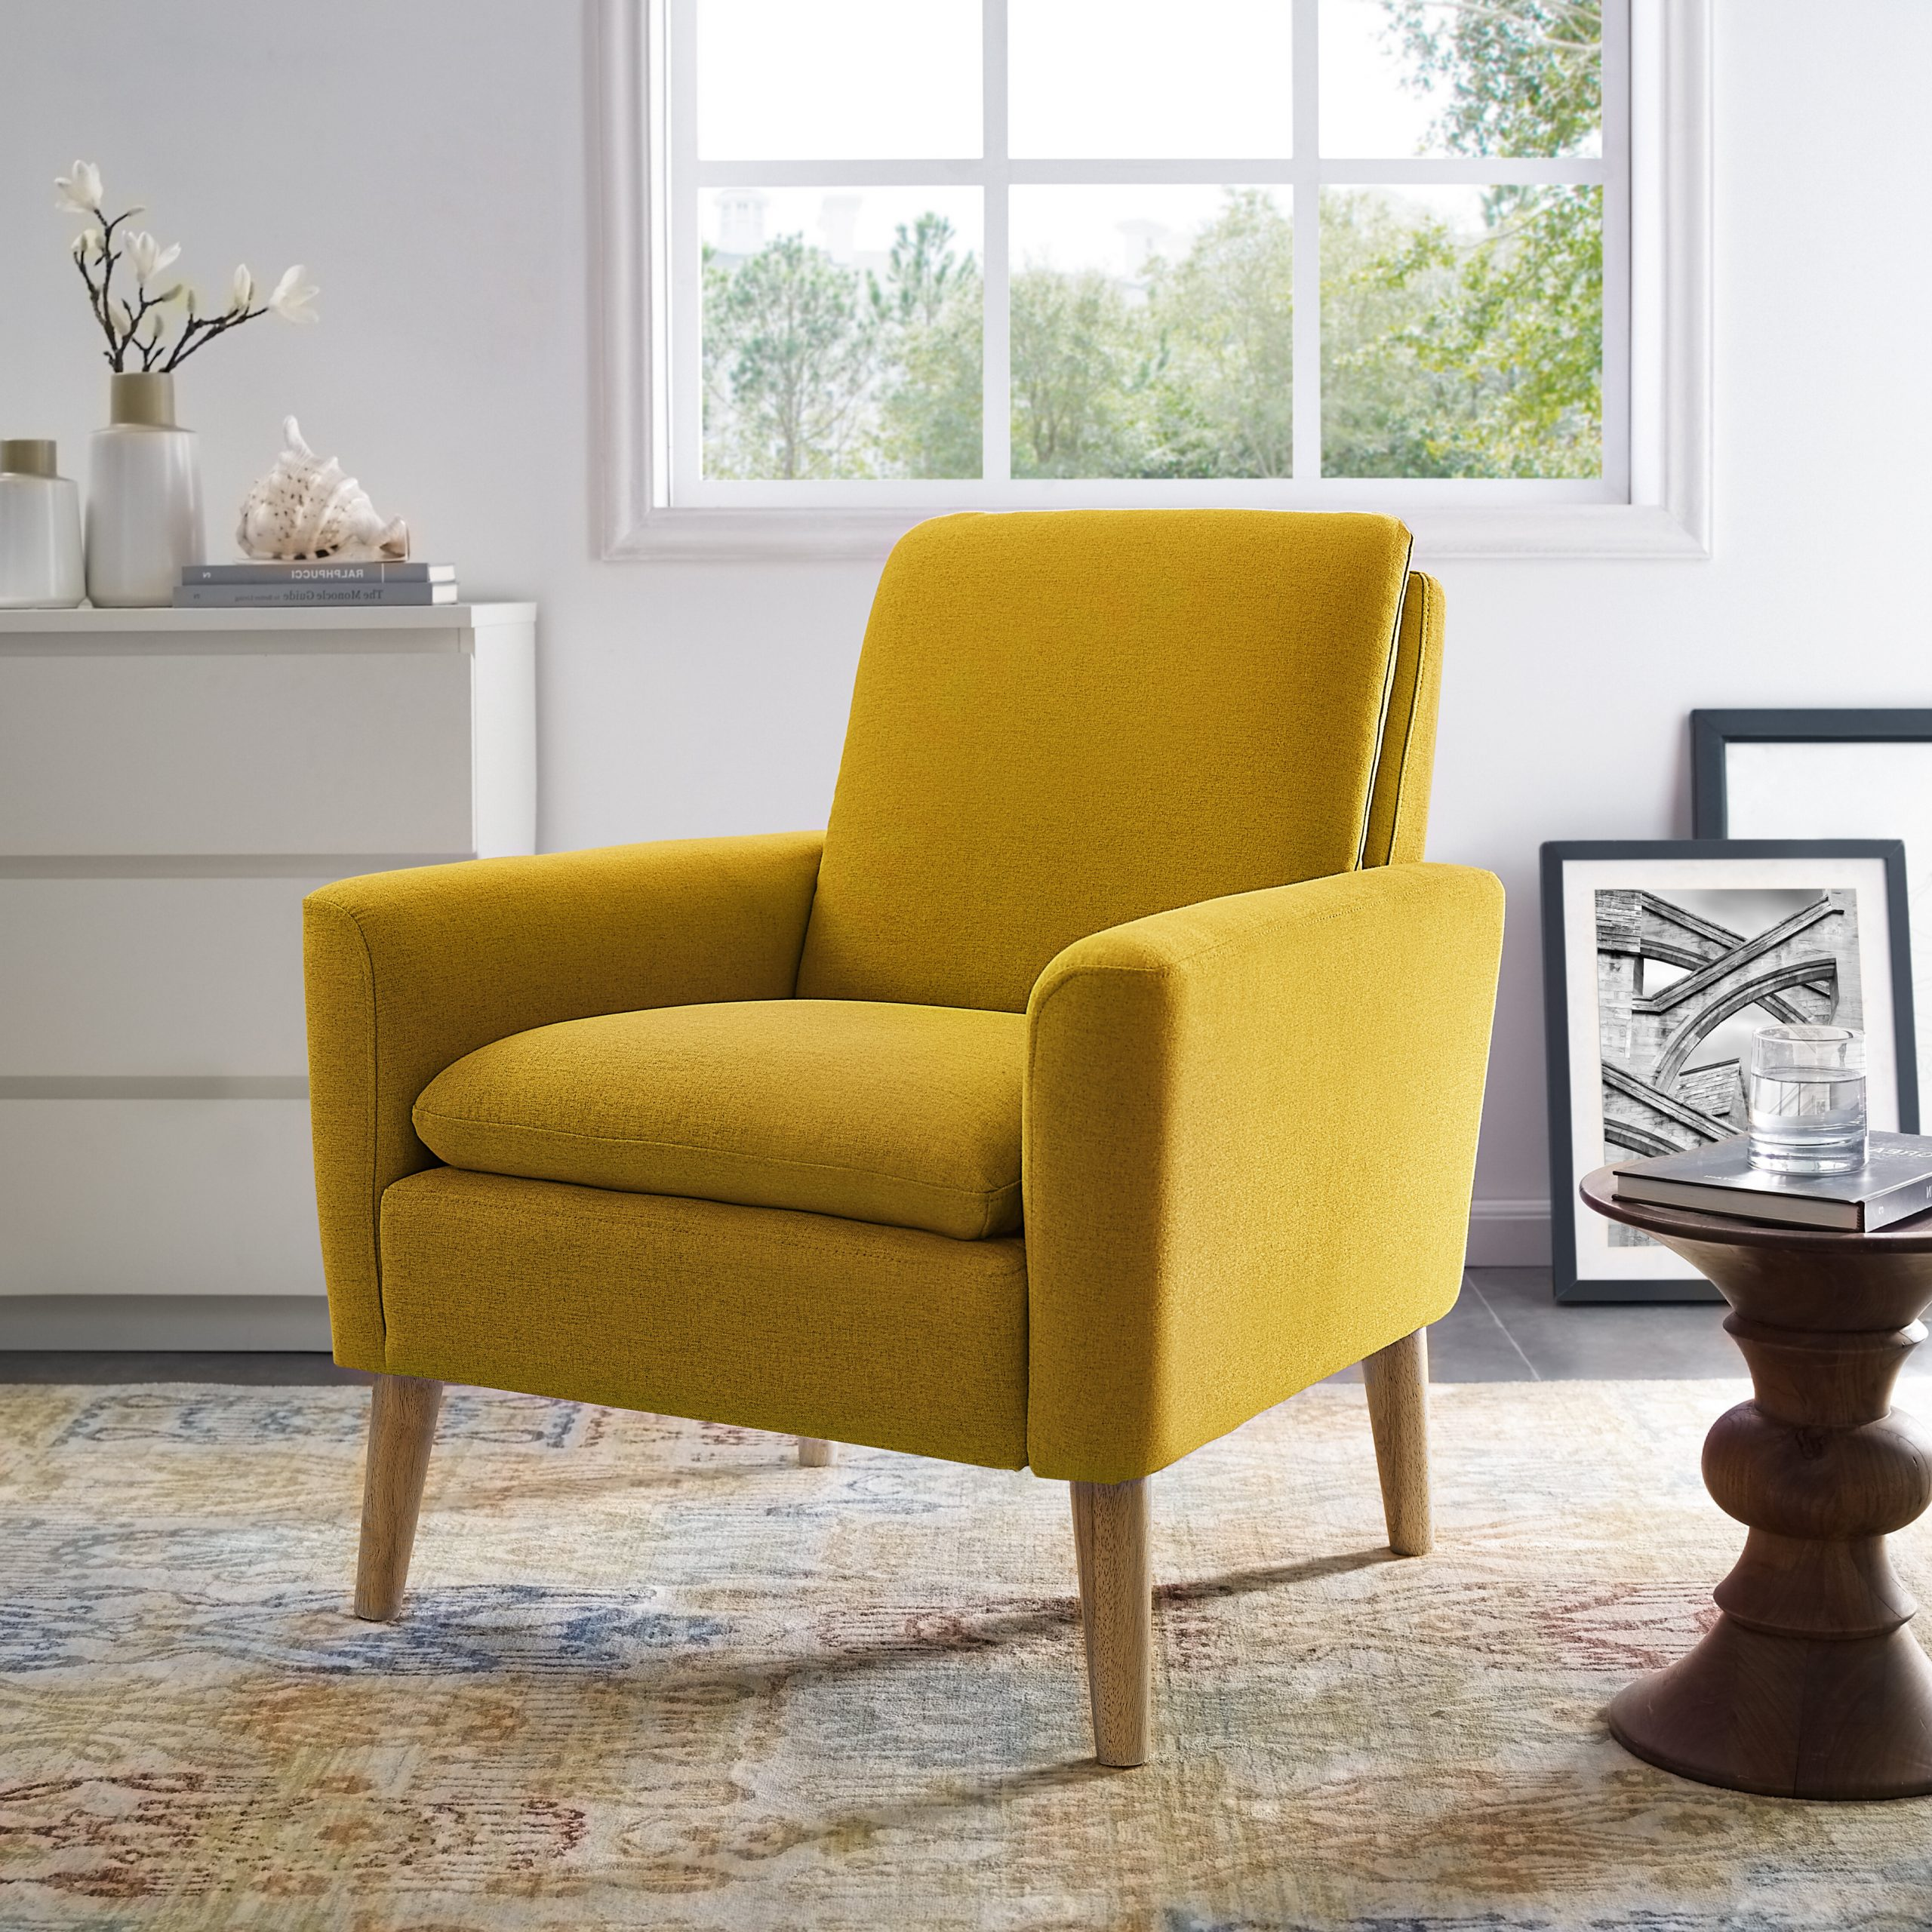 [%accent Chairs | Up To 60% Off Through 01/05 With Most Recently Released Bernardston Armchairs|bernardston Armchairs For Widely Used Accent Chairs | Up To 60% Off Through 01/05|trendy Bernardston Armchairs Inside Accent Chairs | Up To 60% Off Through 01/05|most Recently Released Accent Chairs | Up To 60% Off Through 01/05 Pertaining To Bernardston Armchairs%] (View 20 of 20)